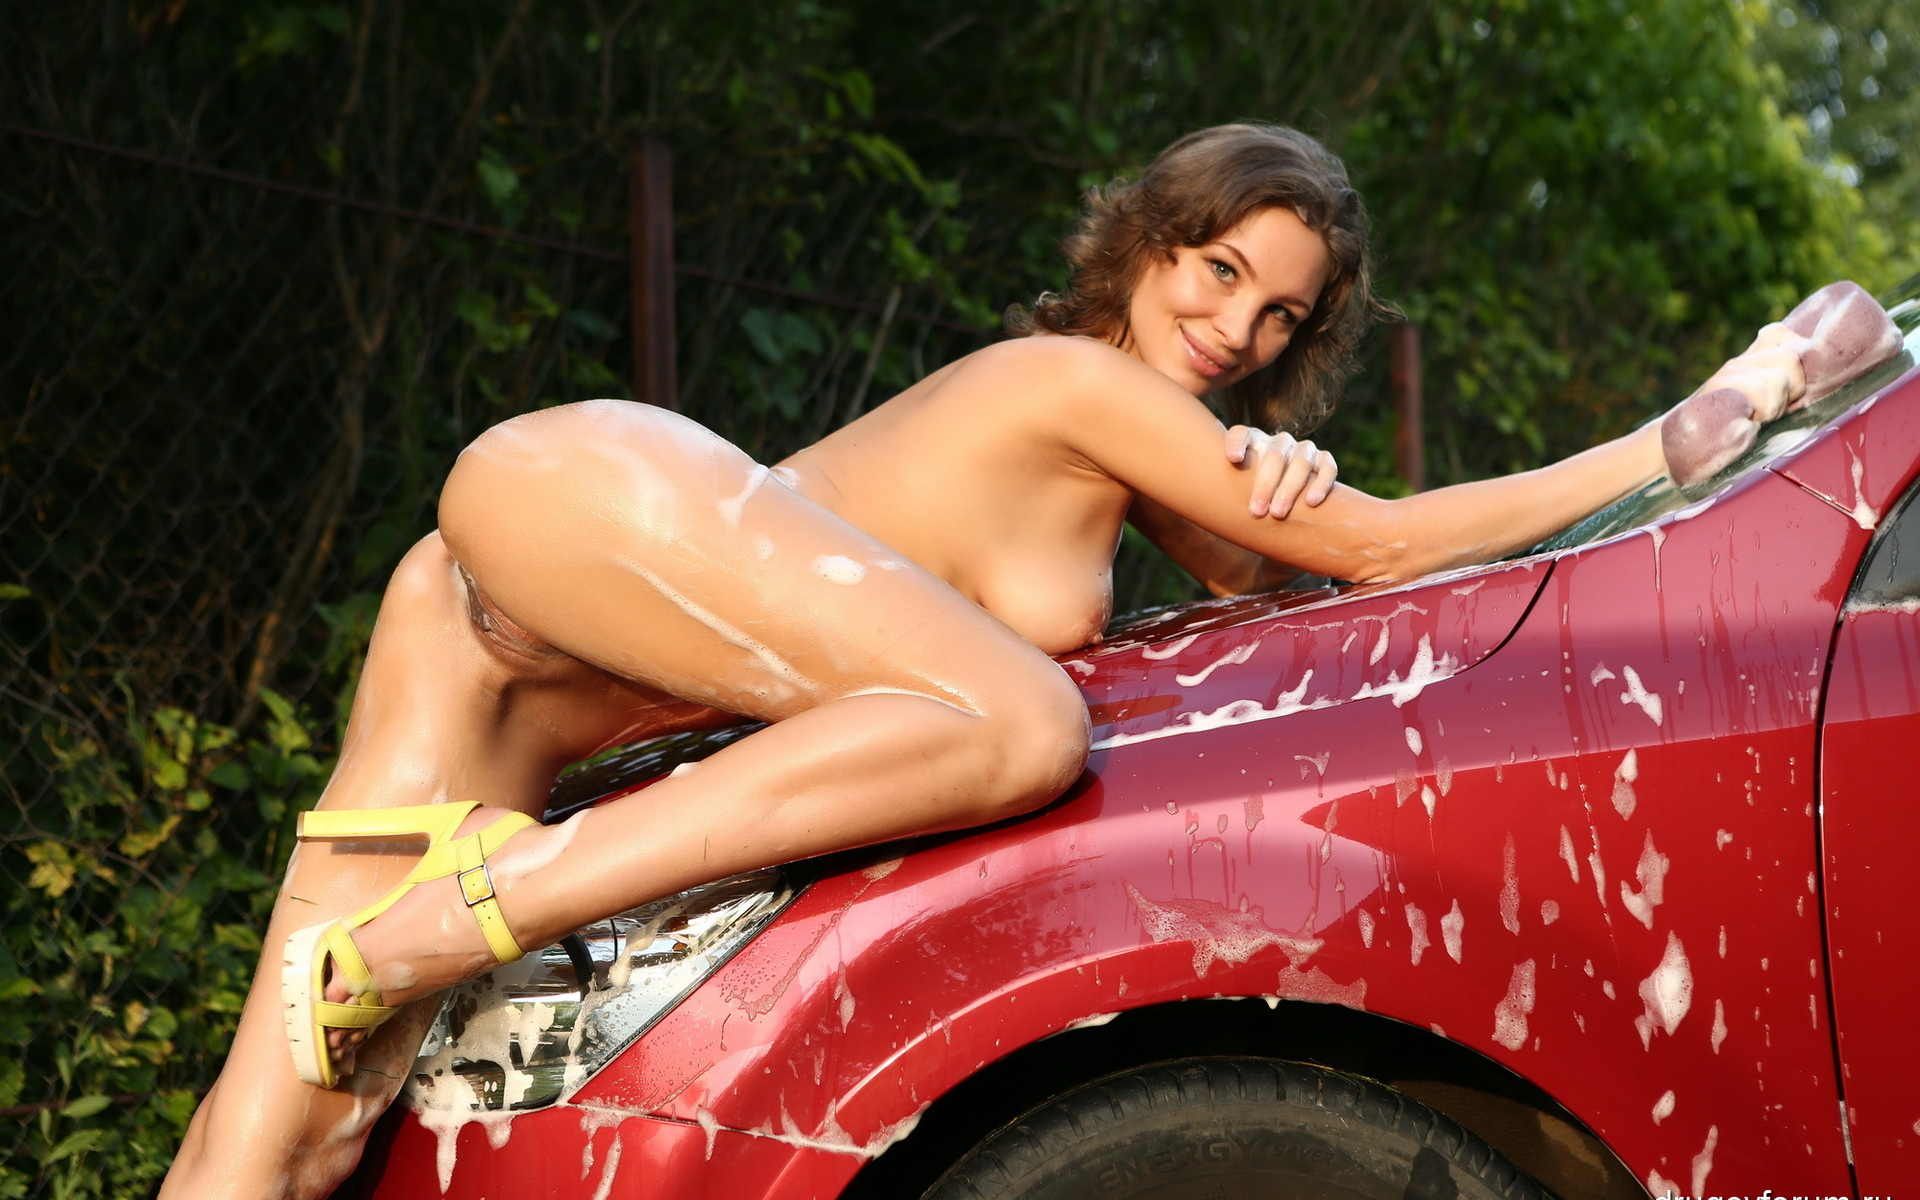 Sexy women giving nude car washes #11